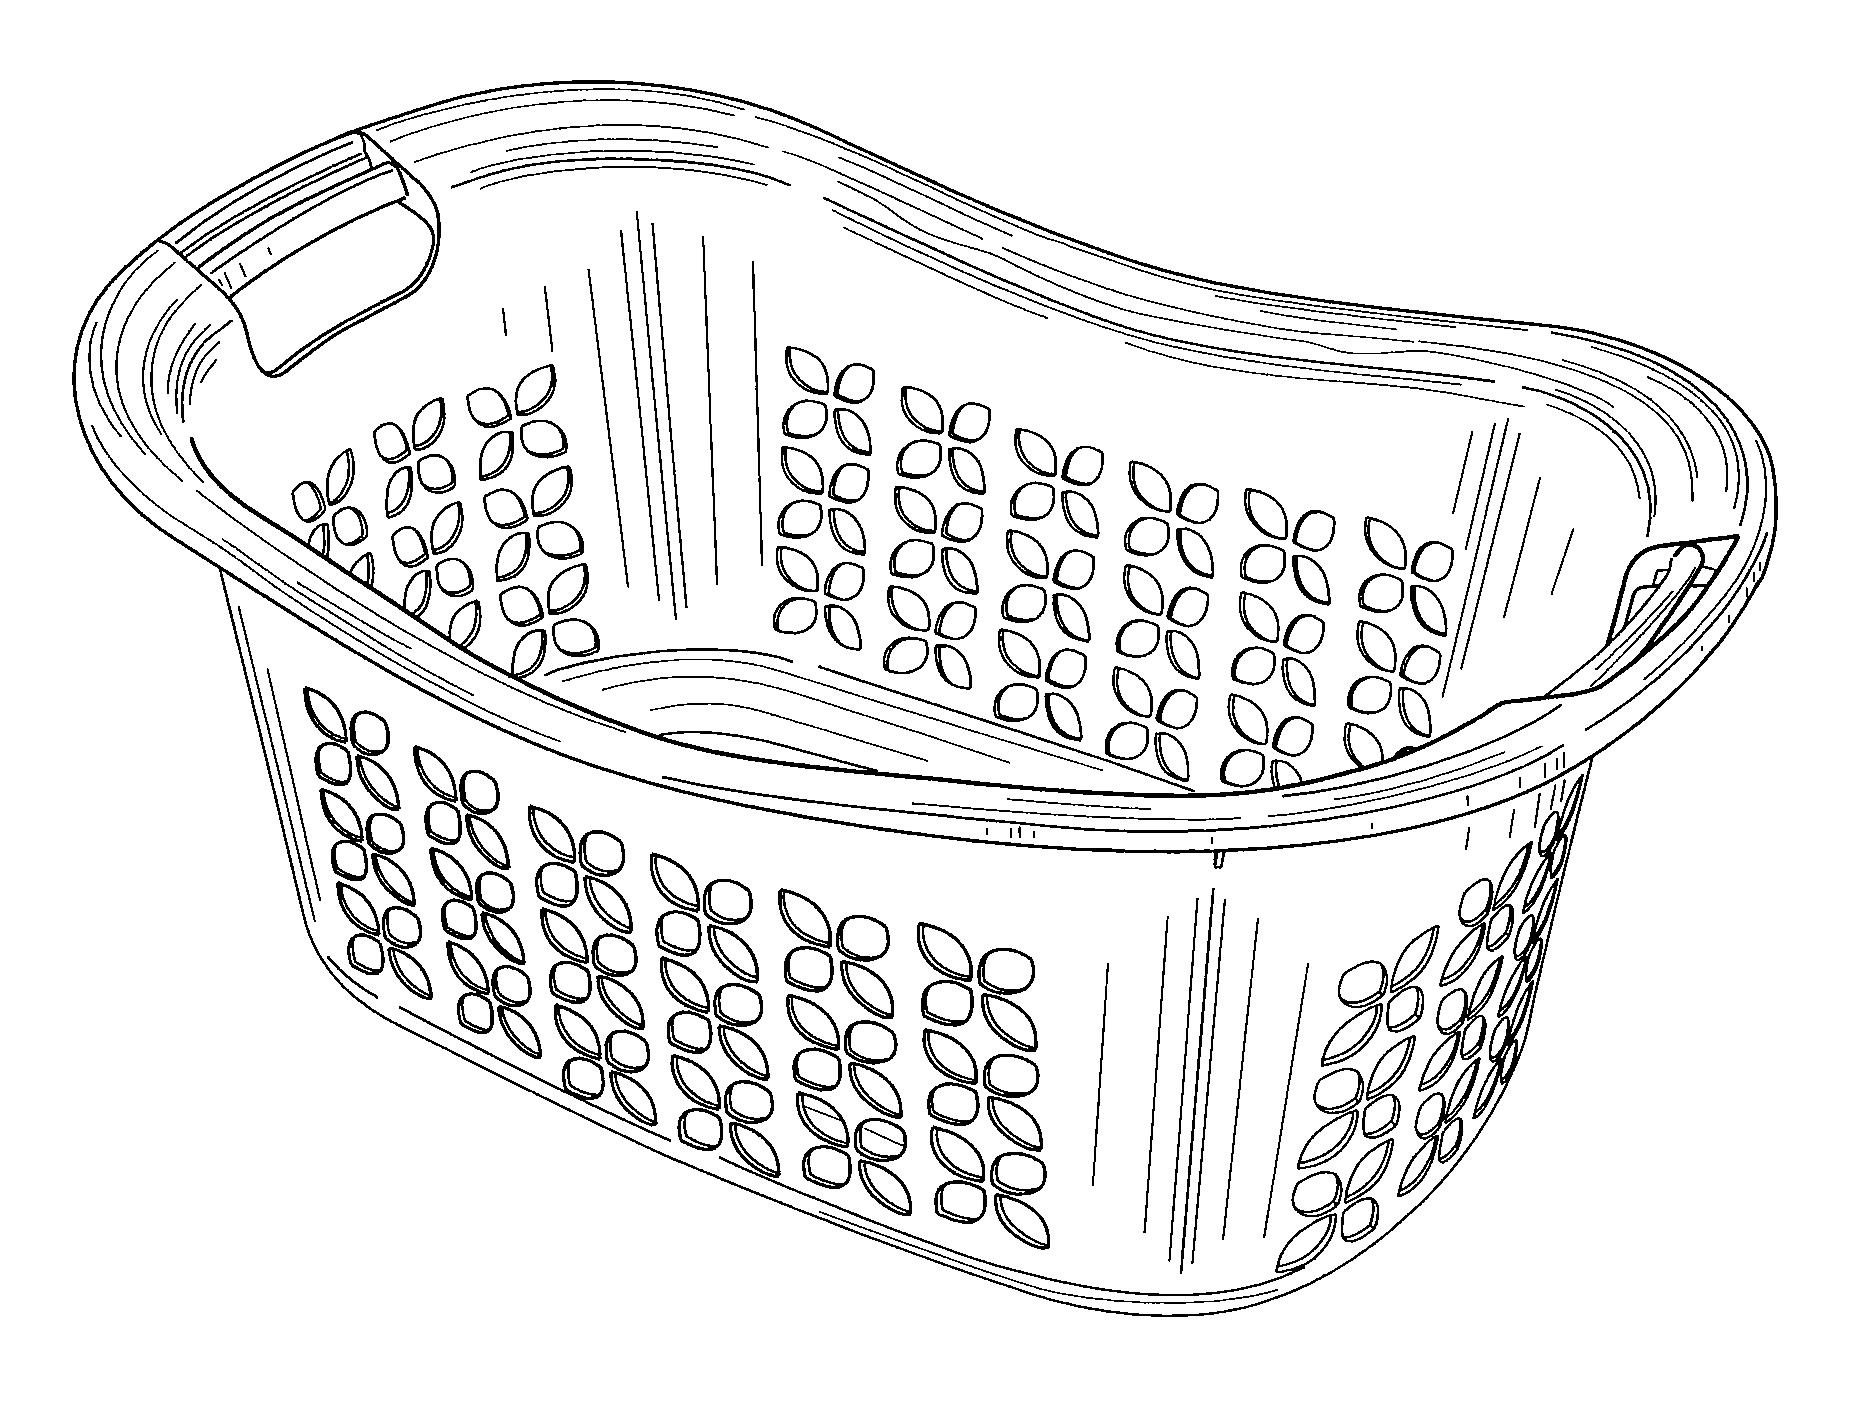 basket drawing patent usd584020 laundry basket google patents basket drawing